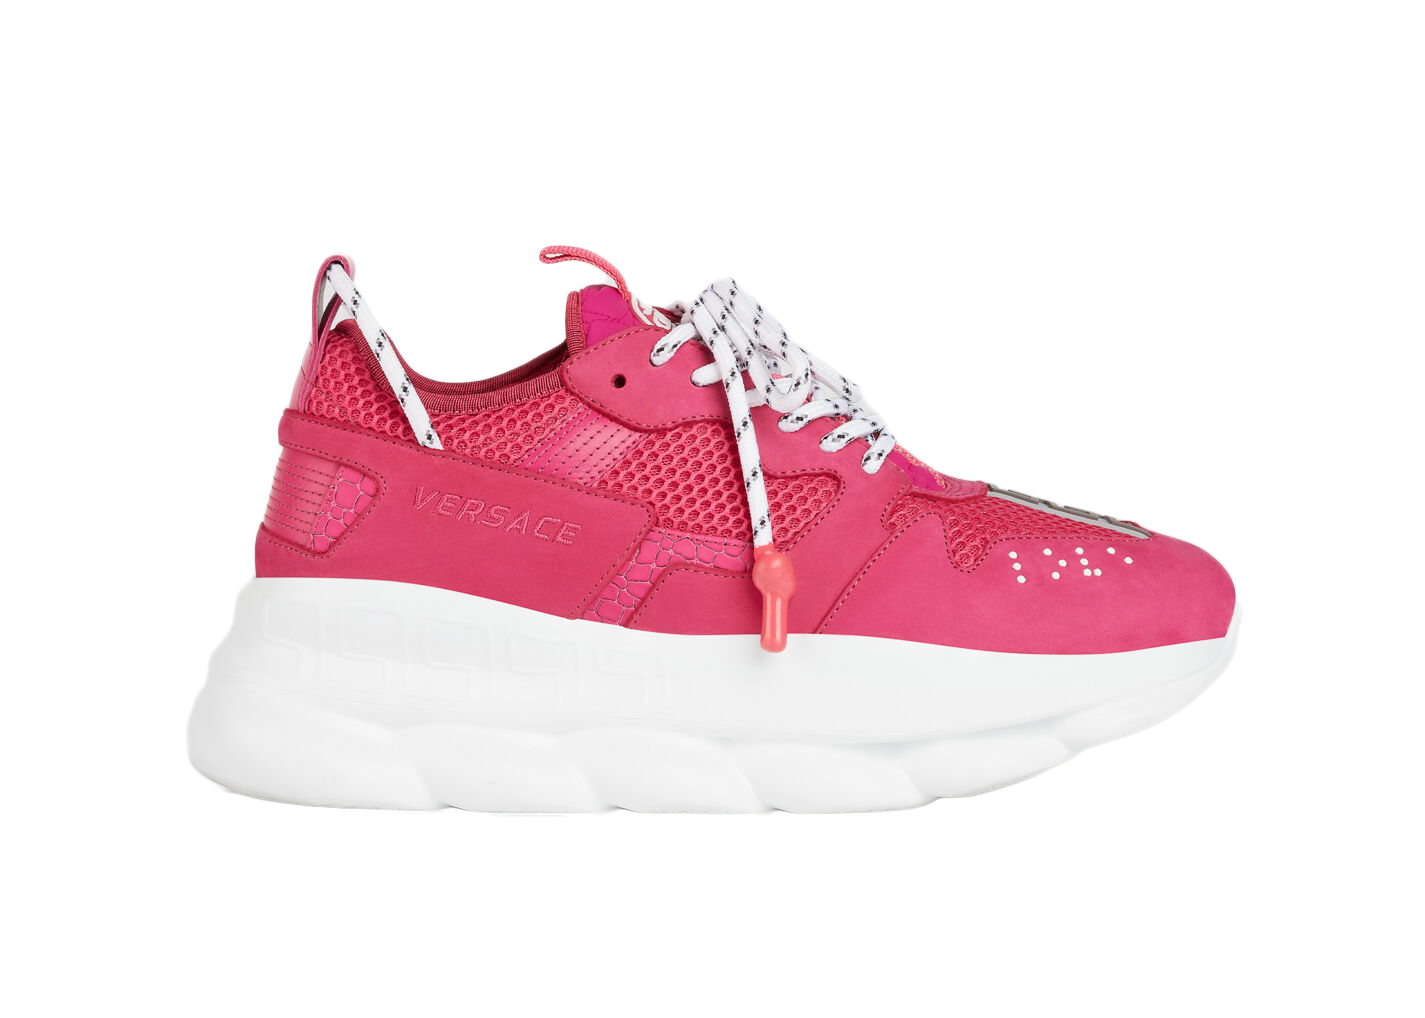 Versace Chain Reaction 2 Hot Pink